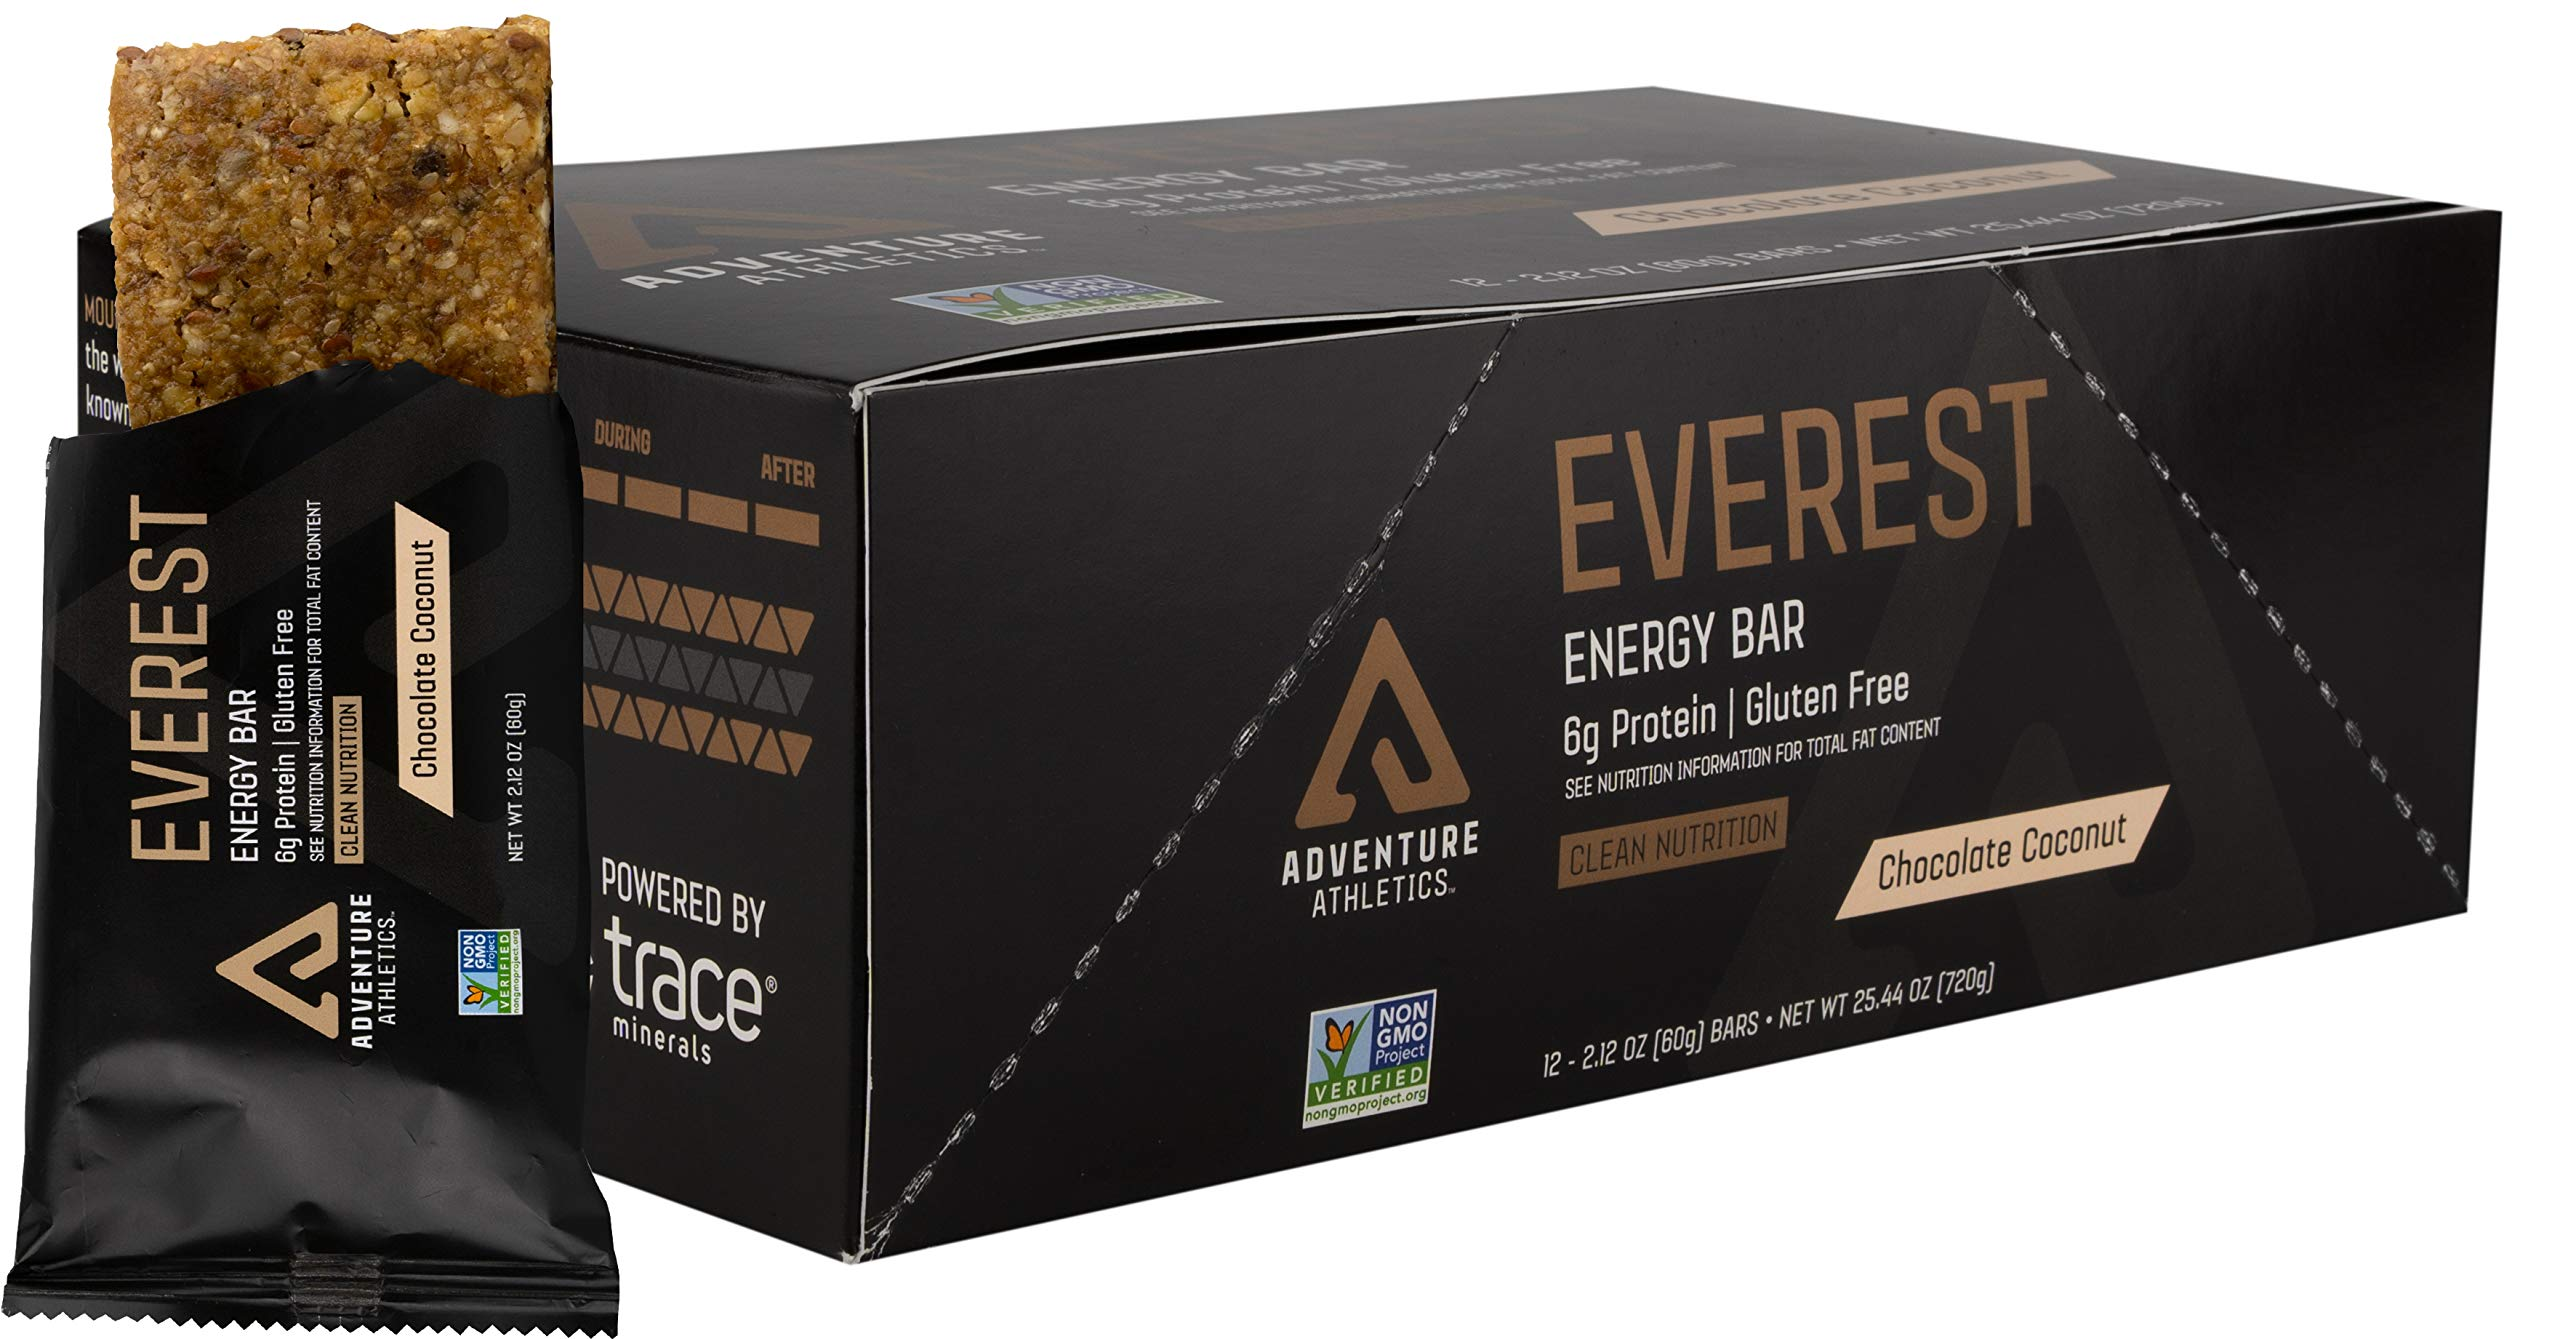 Everest Energy Bar Chocolate Coconut 12 Bars by Adventure Athletics